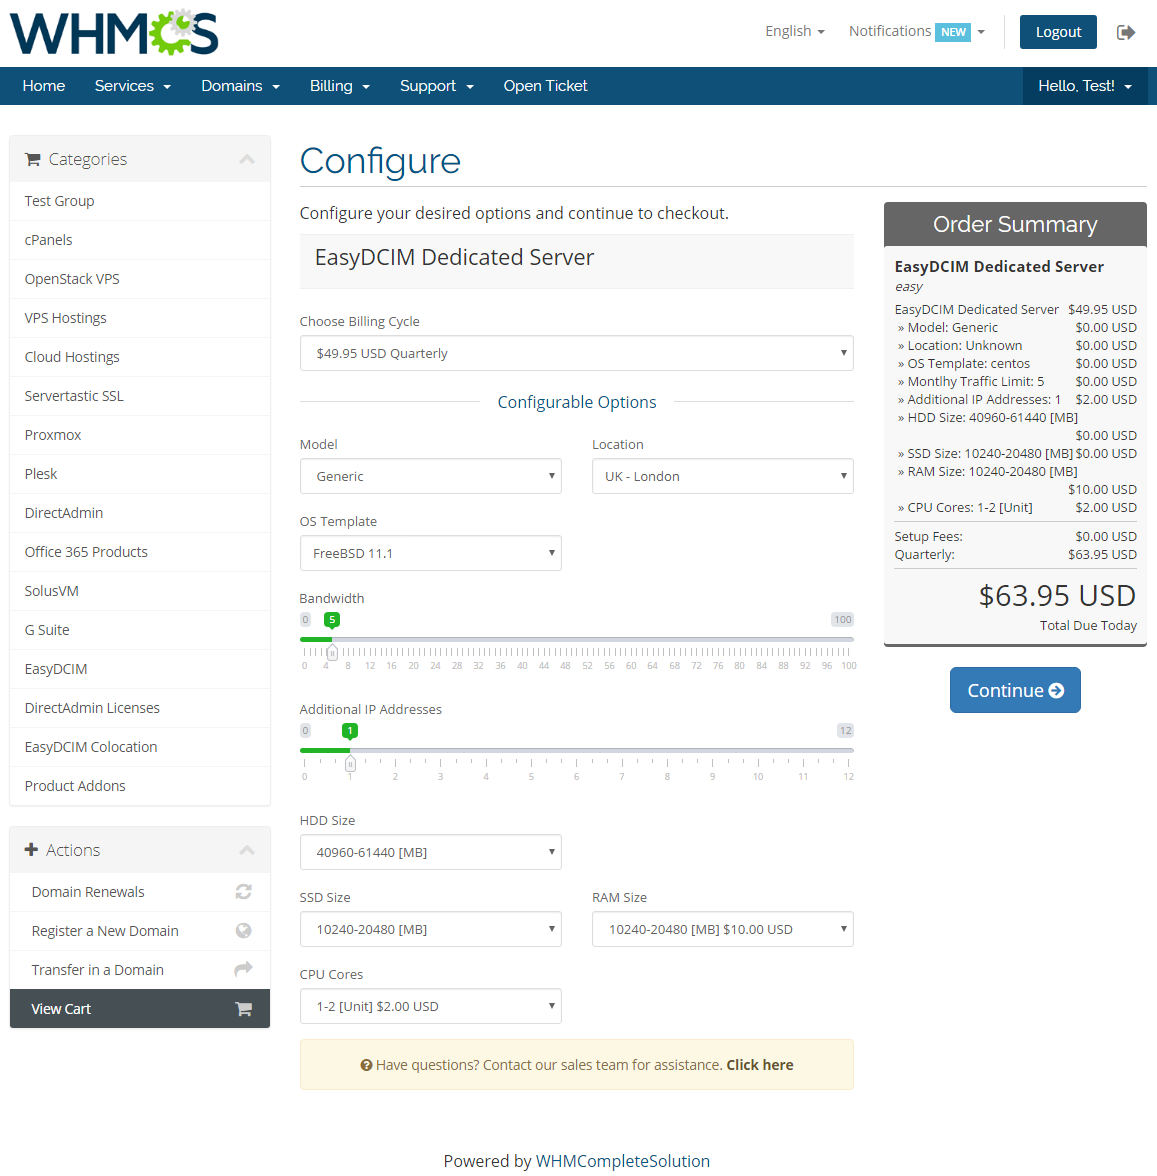 EasyDCIM Dedicated Servers For WHMCS: Screen 8